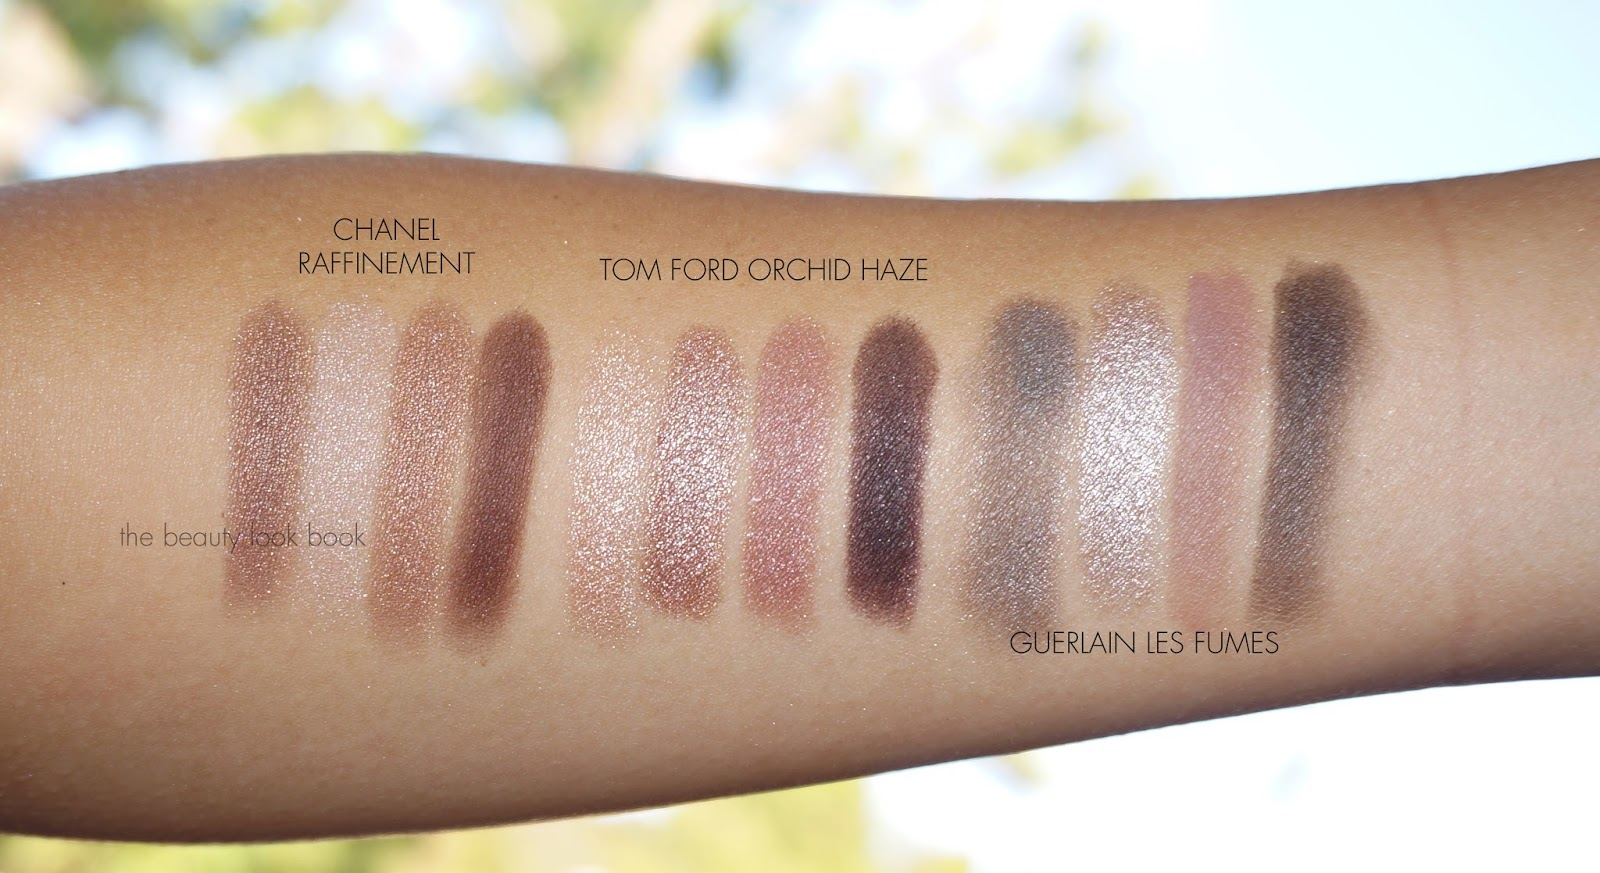 Tom Ford Orchid Haze Eye Color Quad The Beauty Look Book